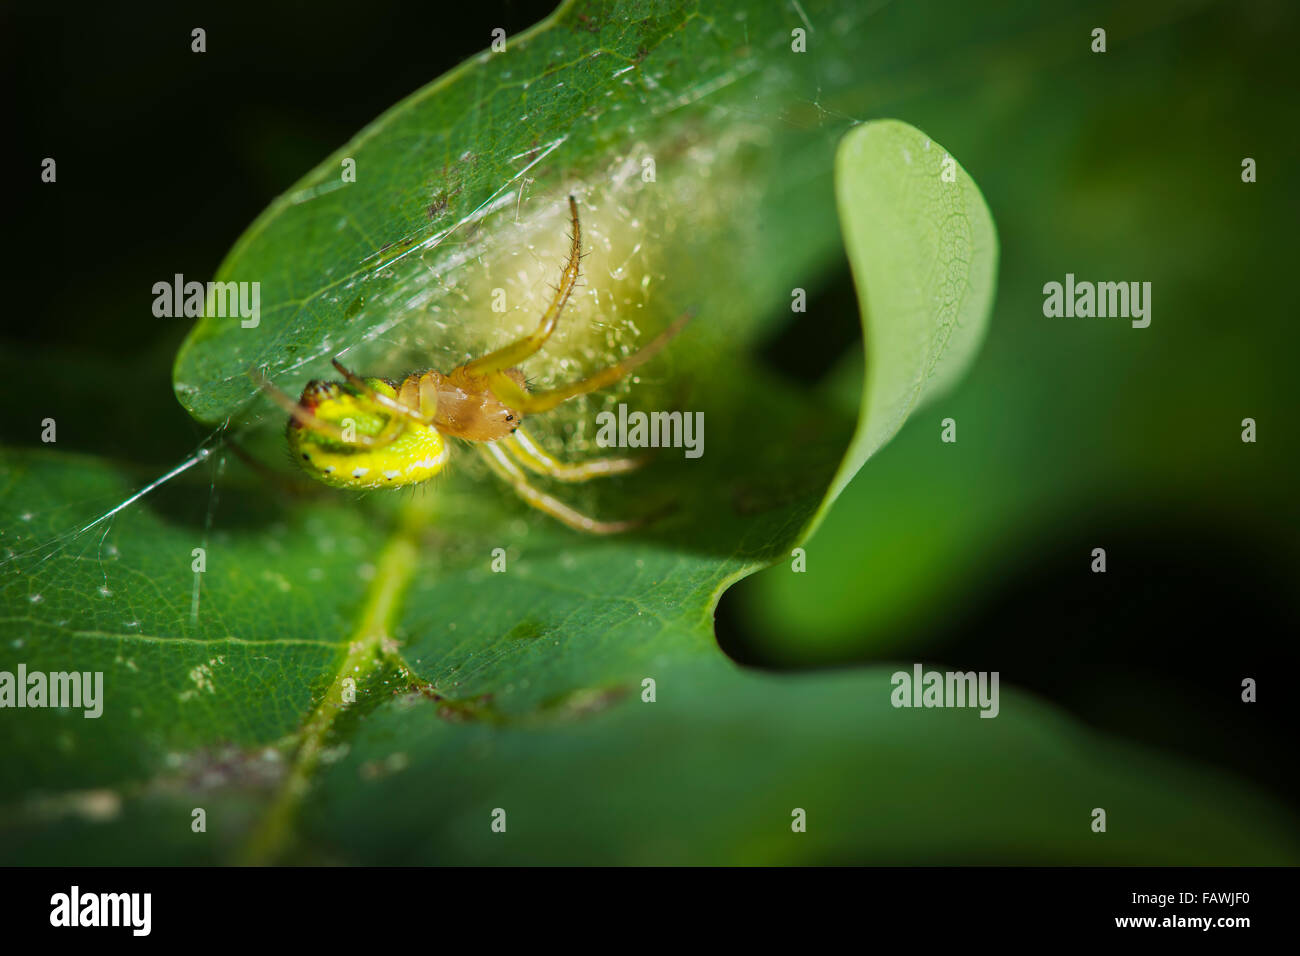 Close-up of a pumpkin Spider (Araniella cucurbitina) sitting between two leaves; Size: approx. 8 mm - Stock Image